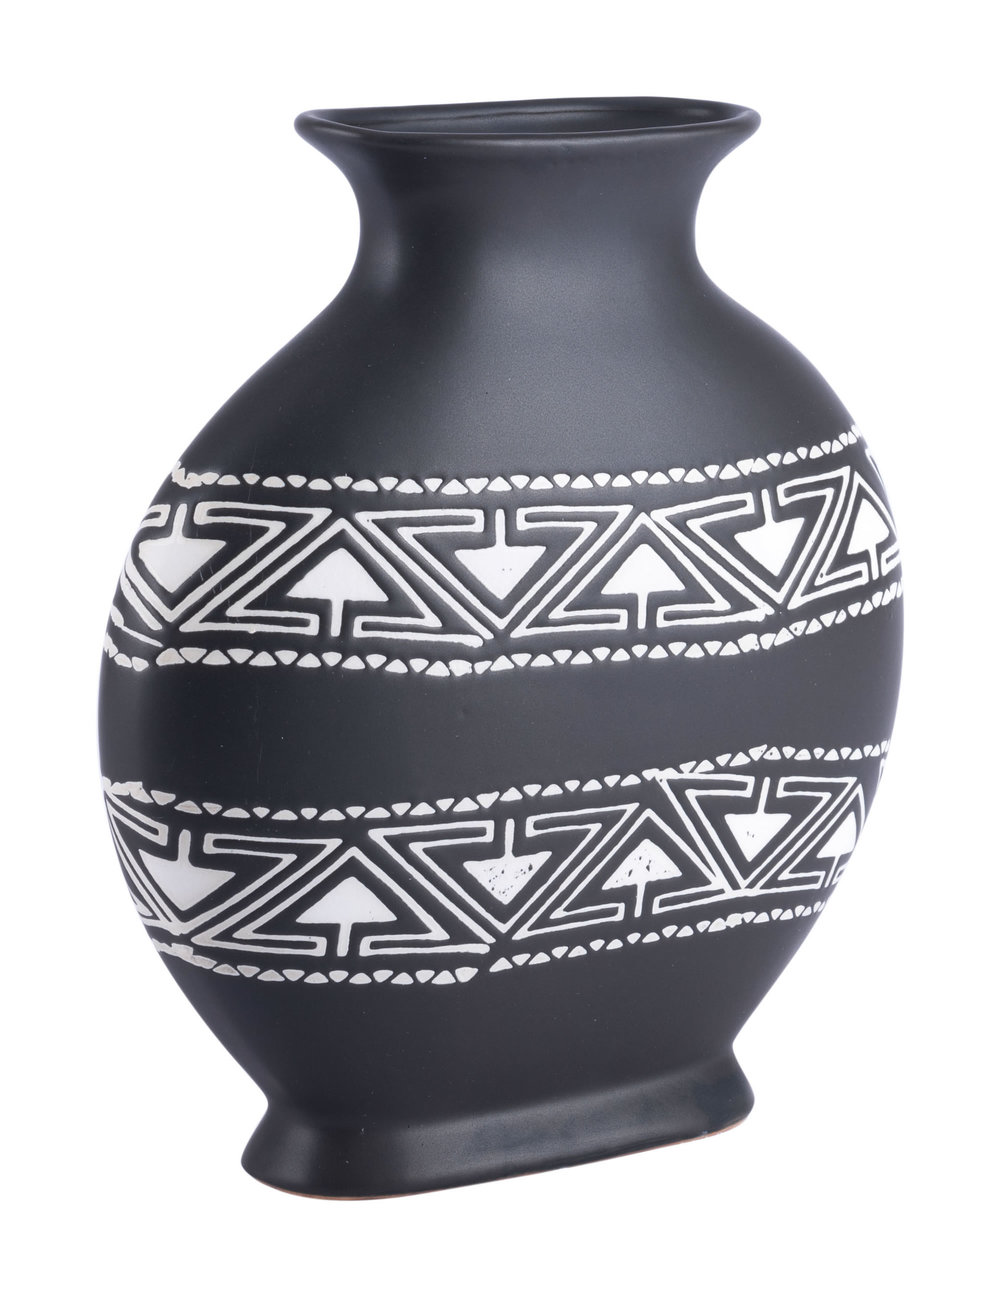 ZUO MODERN CONTEMPORARY, INC - Medium Kolla Vase Black & White